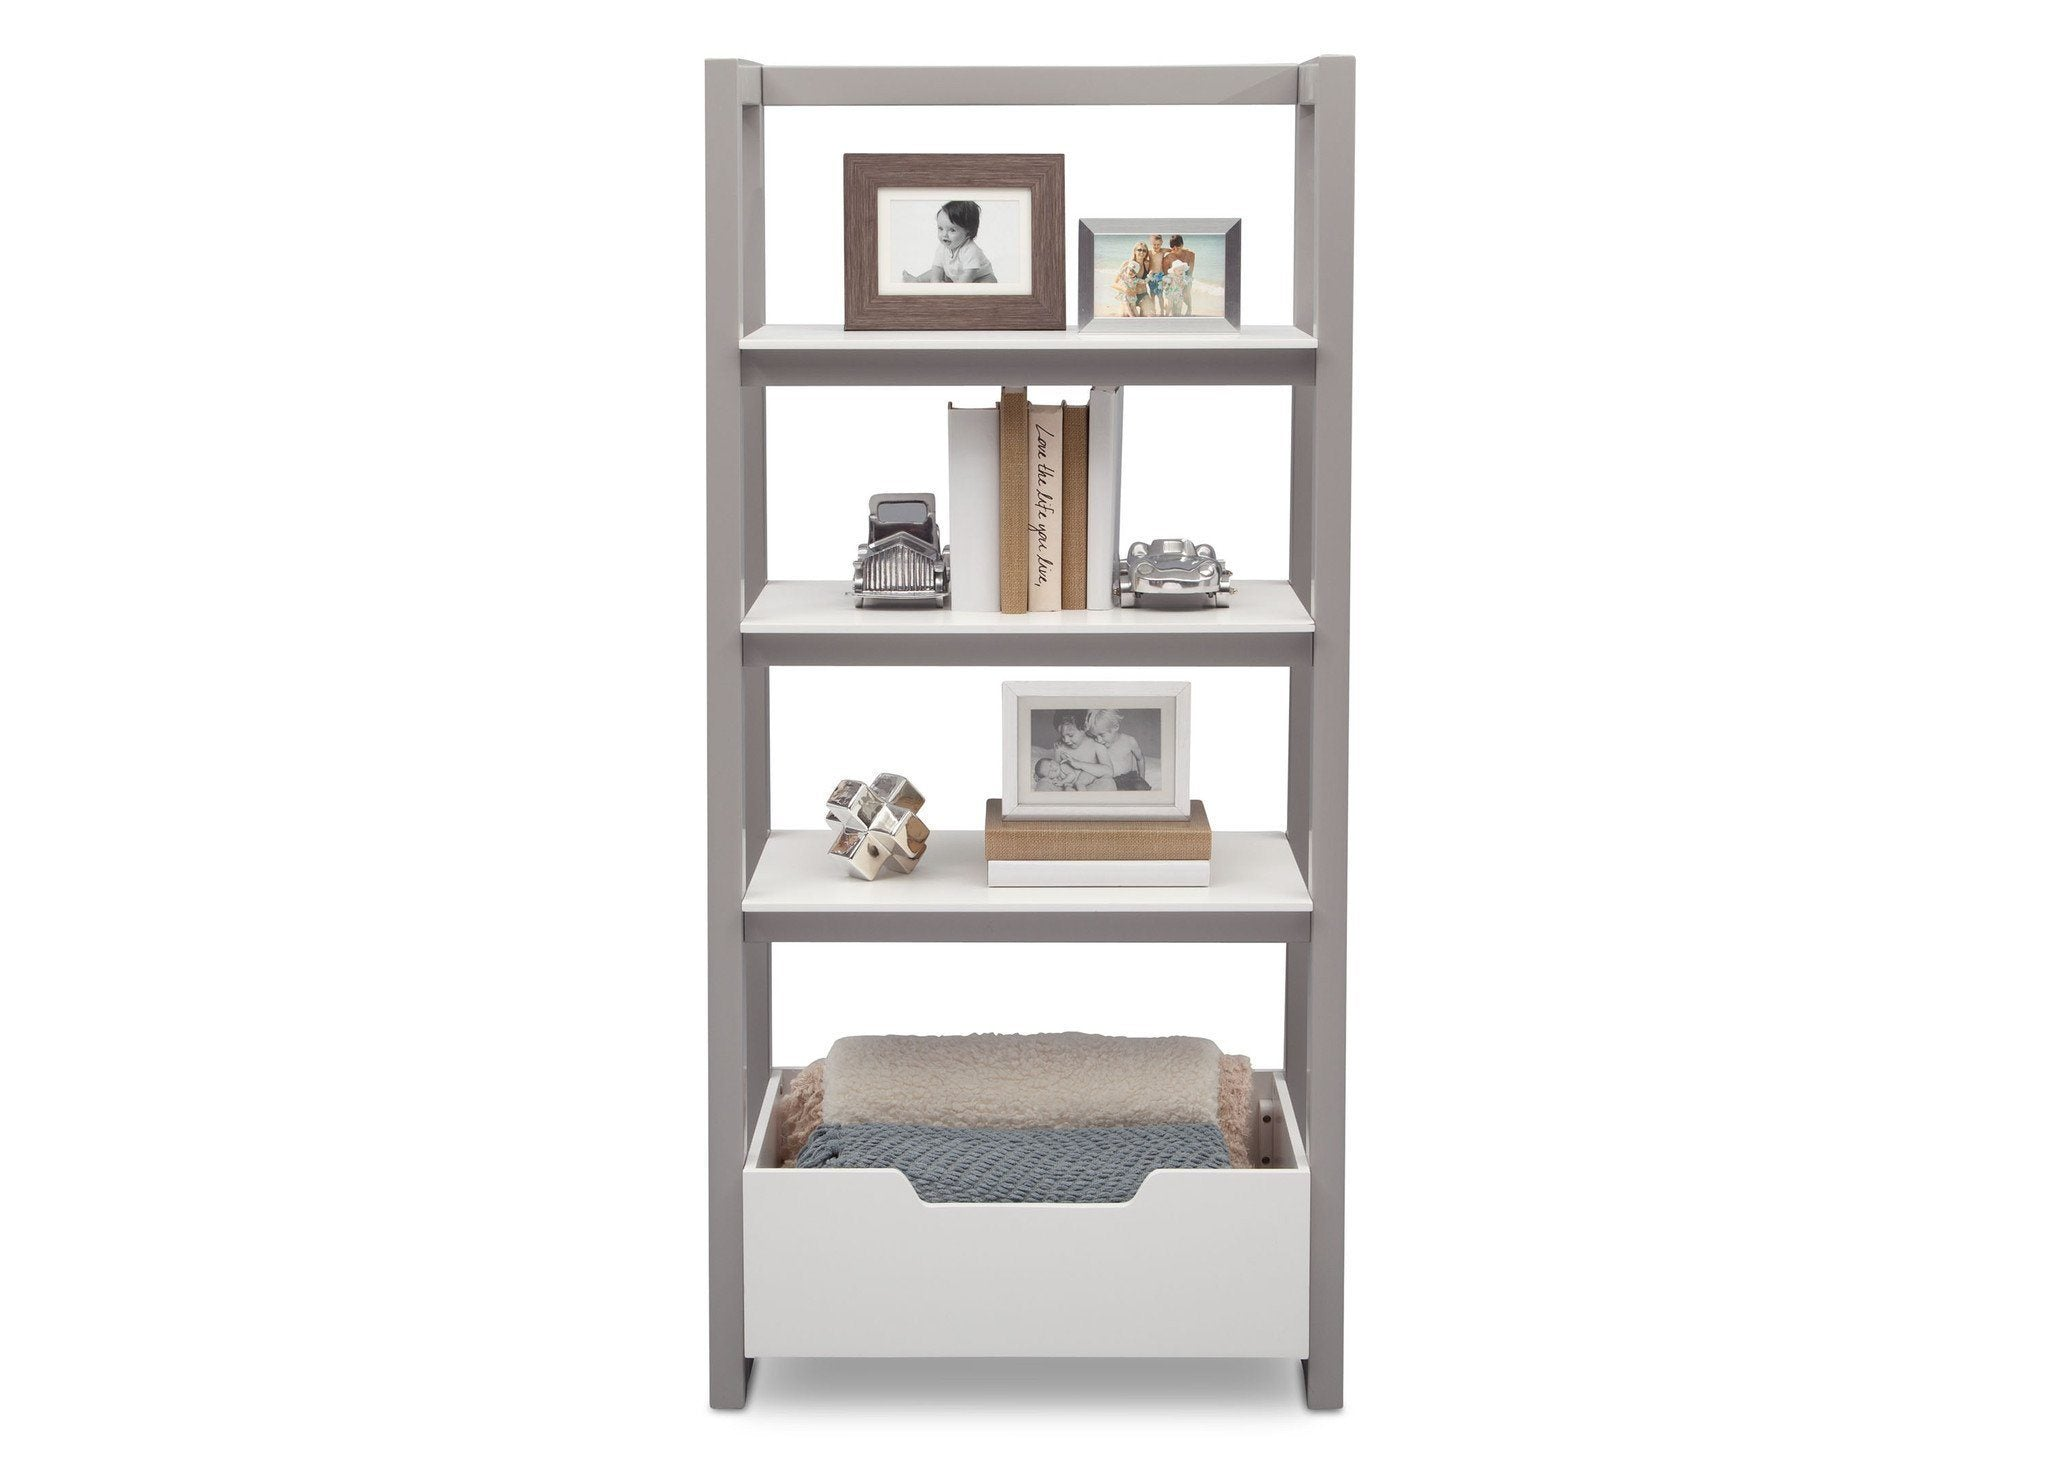 Delta Children Bianca White with Grey (166) Gateway Ladder Shelf, Front View with Props a6a